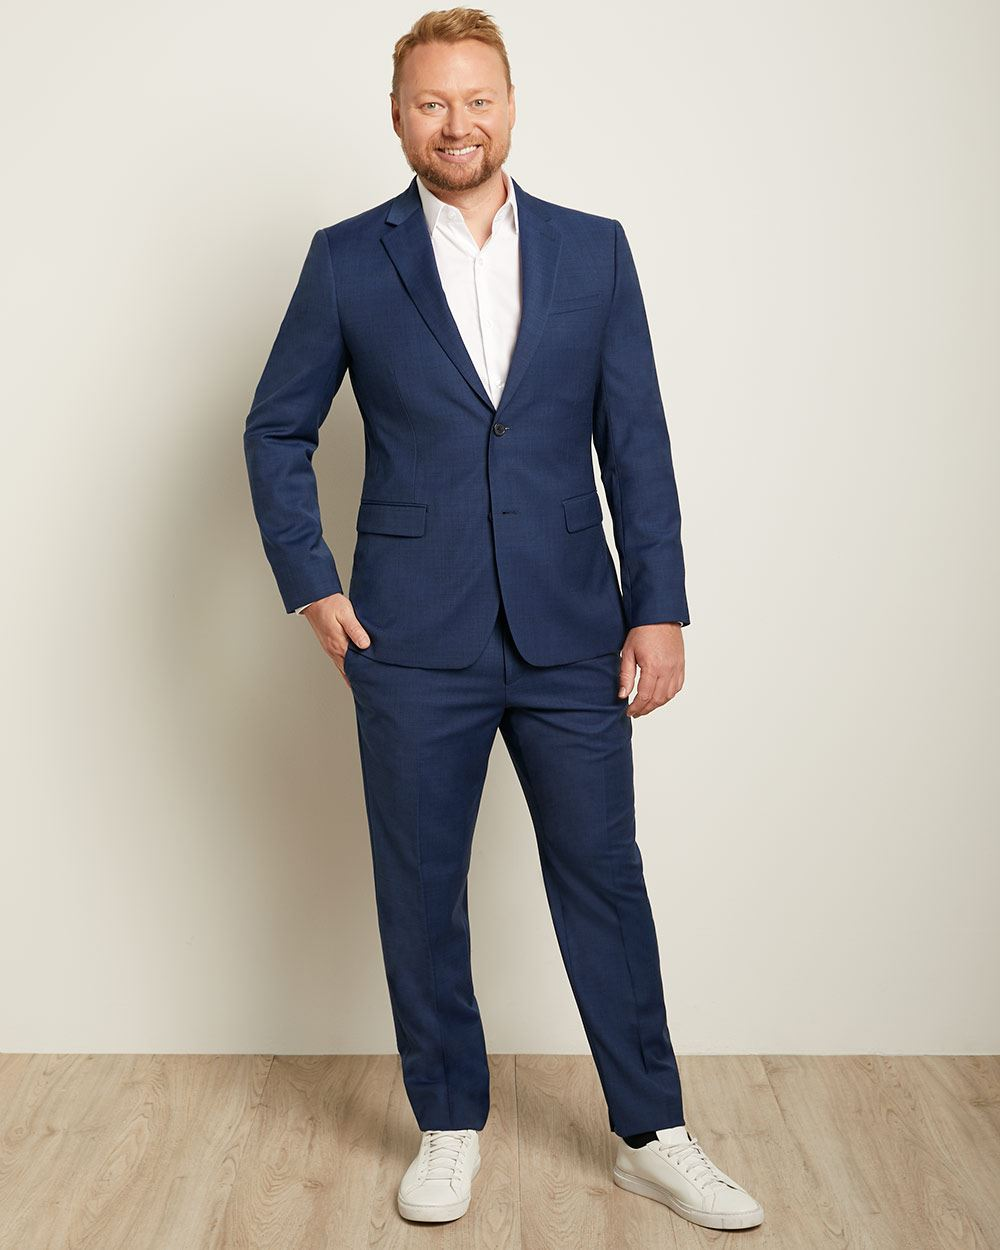 Essential Blue Wool-Blend Suit Blazer - Tall